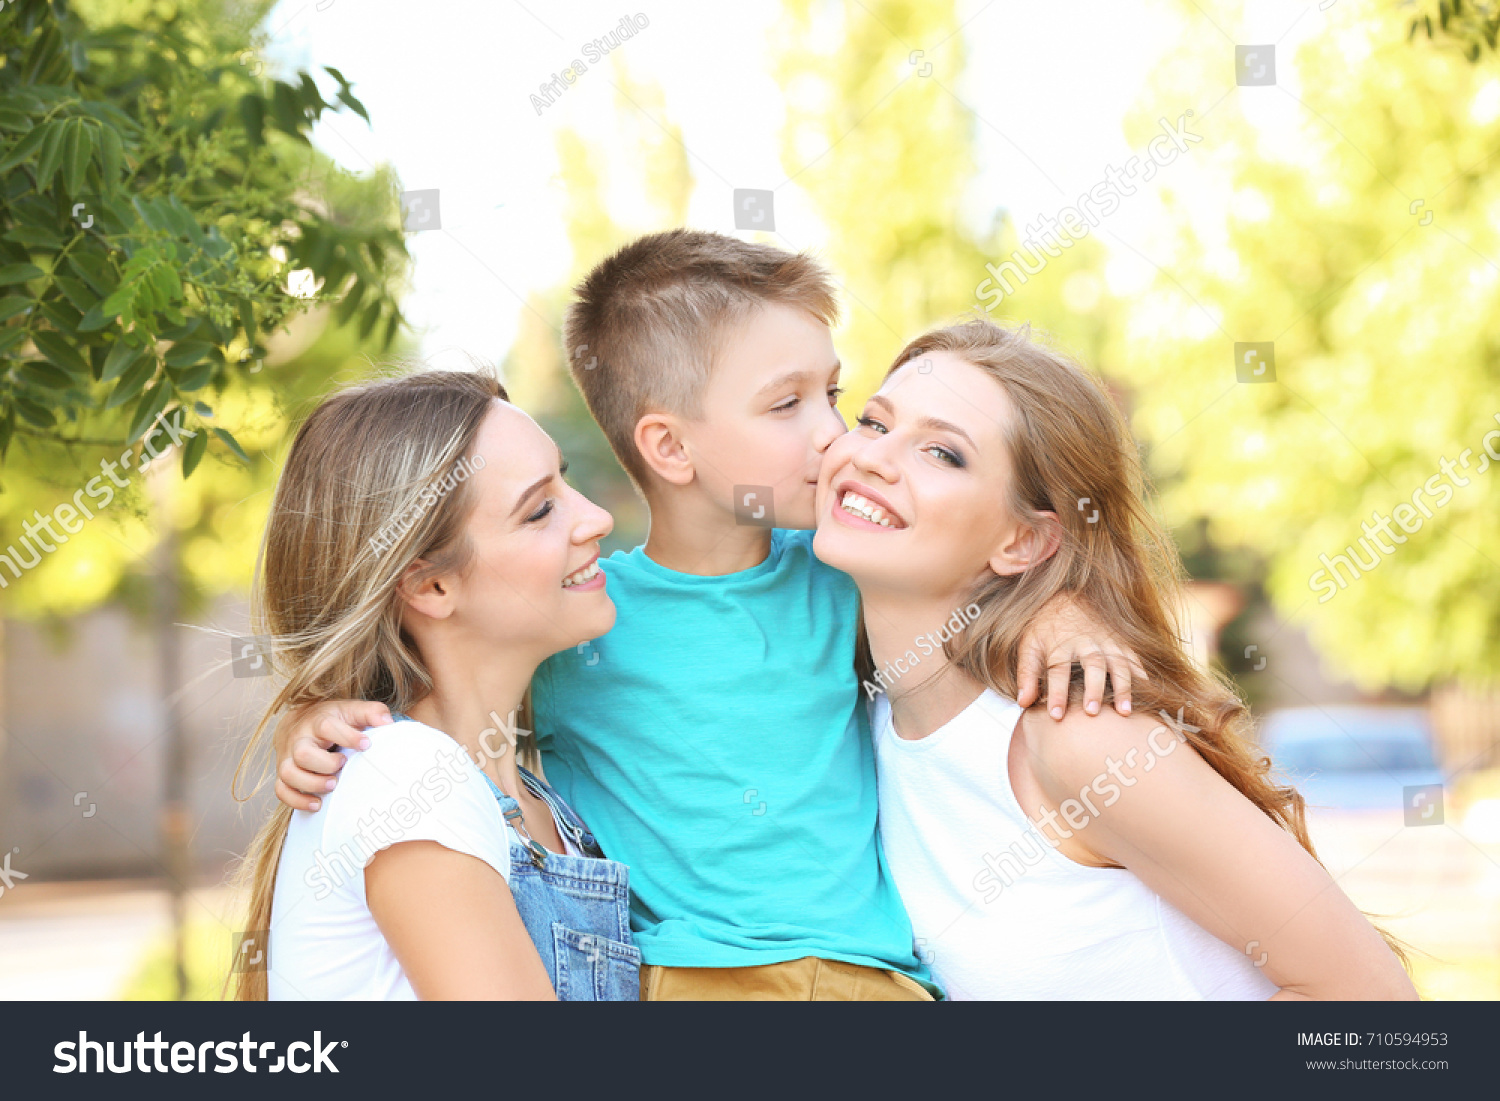 Lesbian mothers and foster son having fun outdoors